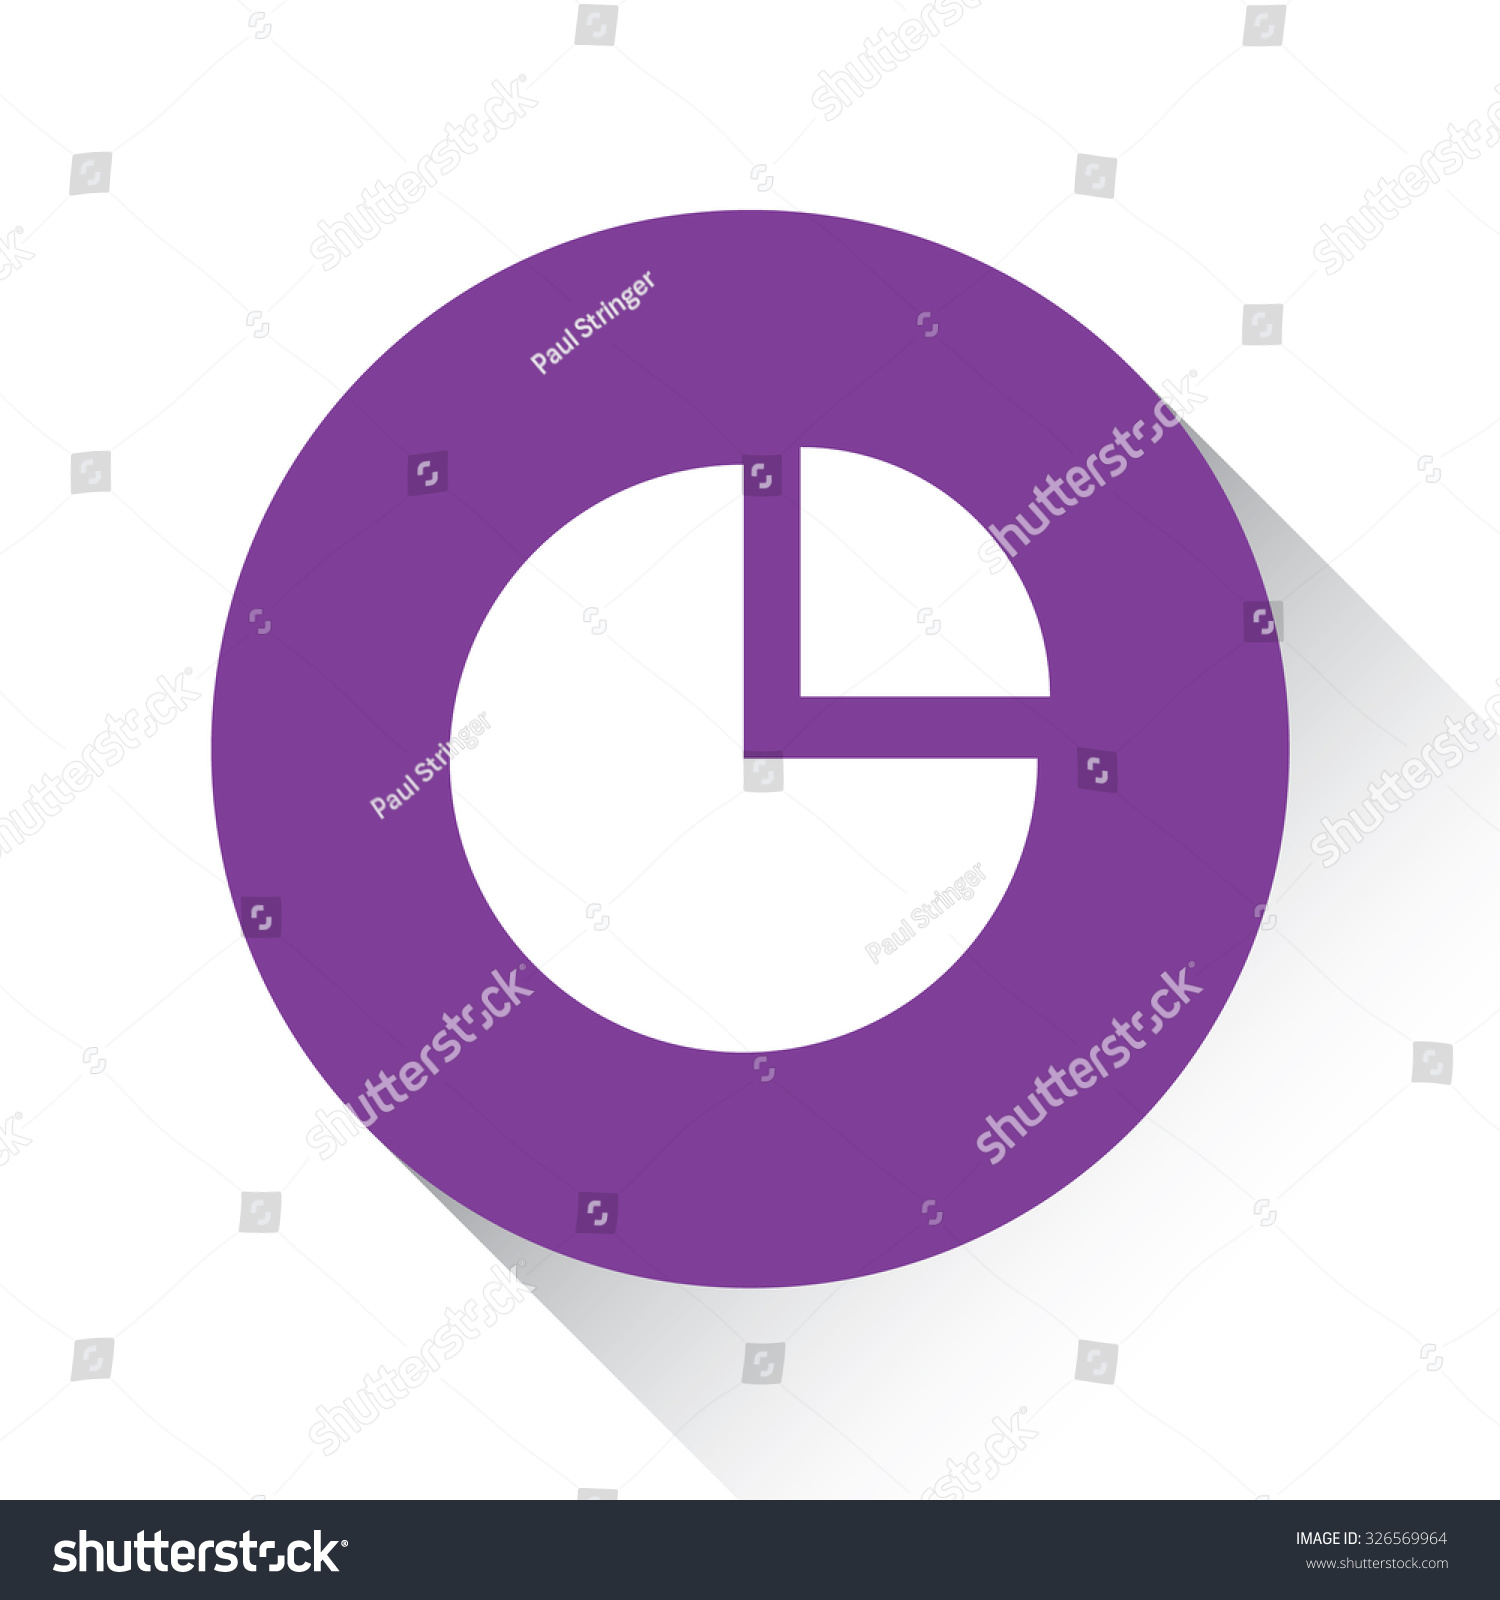 Purple icon isolated on white background stock illustration a purple icon isolated on a white background pie chart exploded nvjuhfo Image collections